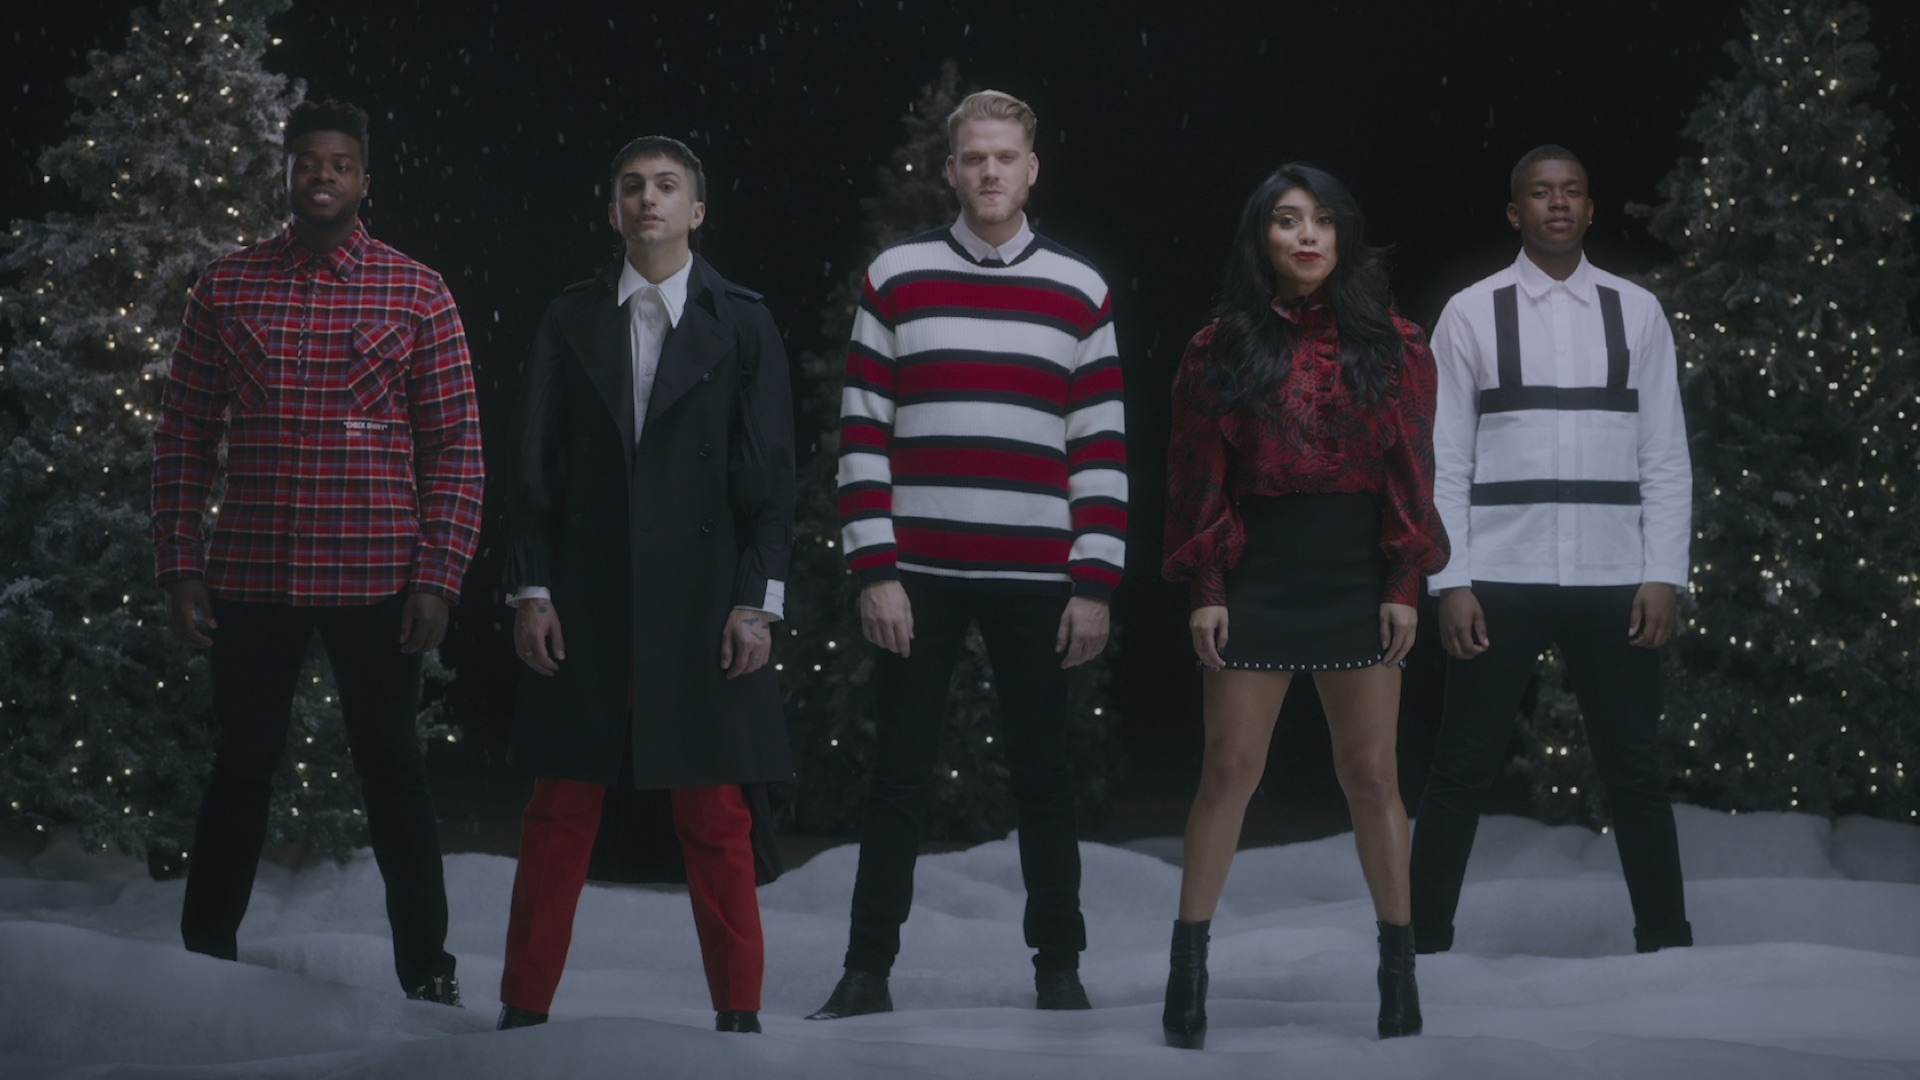 Making Christmas Official Video By Pentatonix On Apple Music